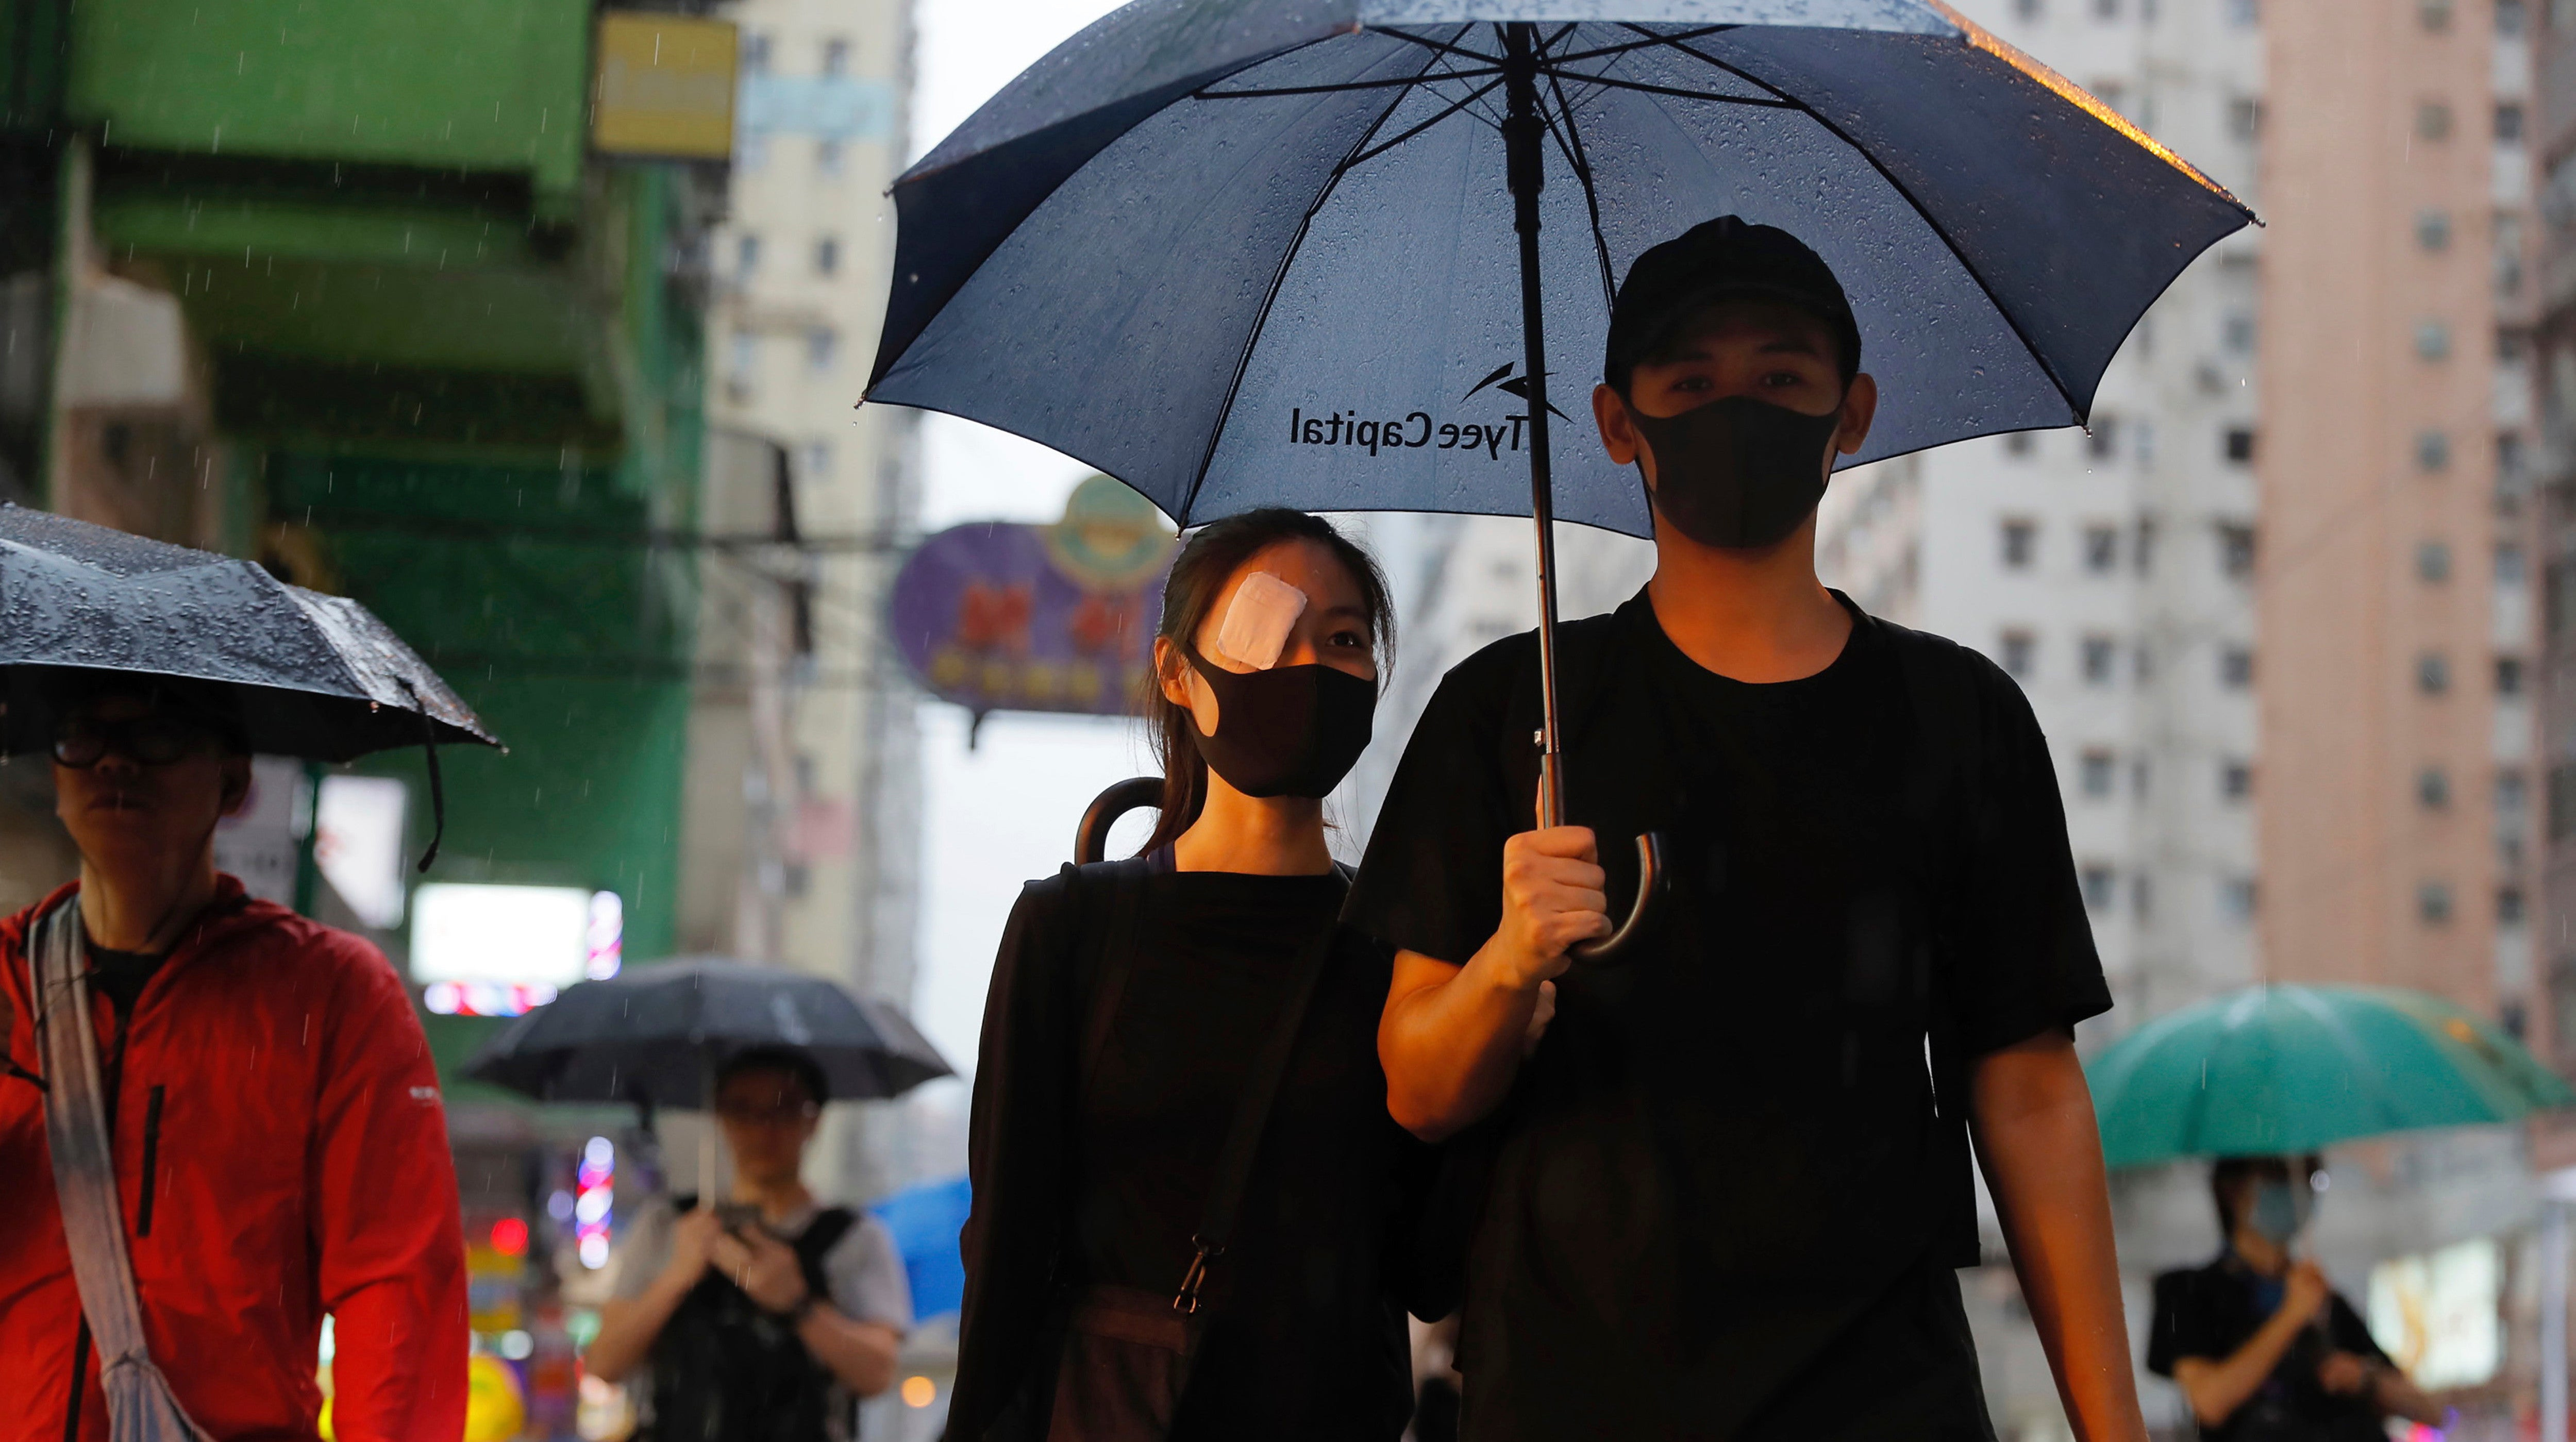 Facebook And Twitter: It Sure Looks Like China's Spreading Bullshit About Hong Kong Protesters